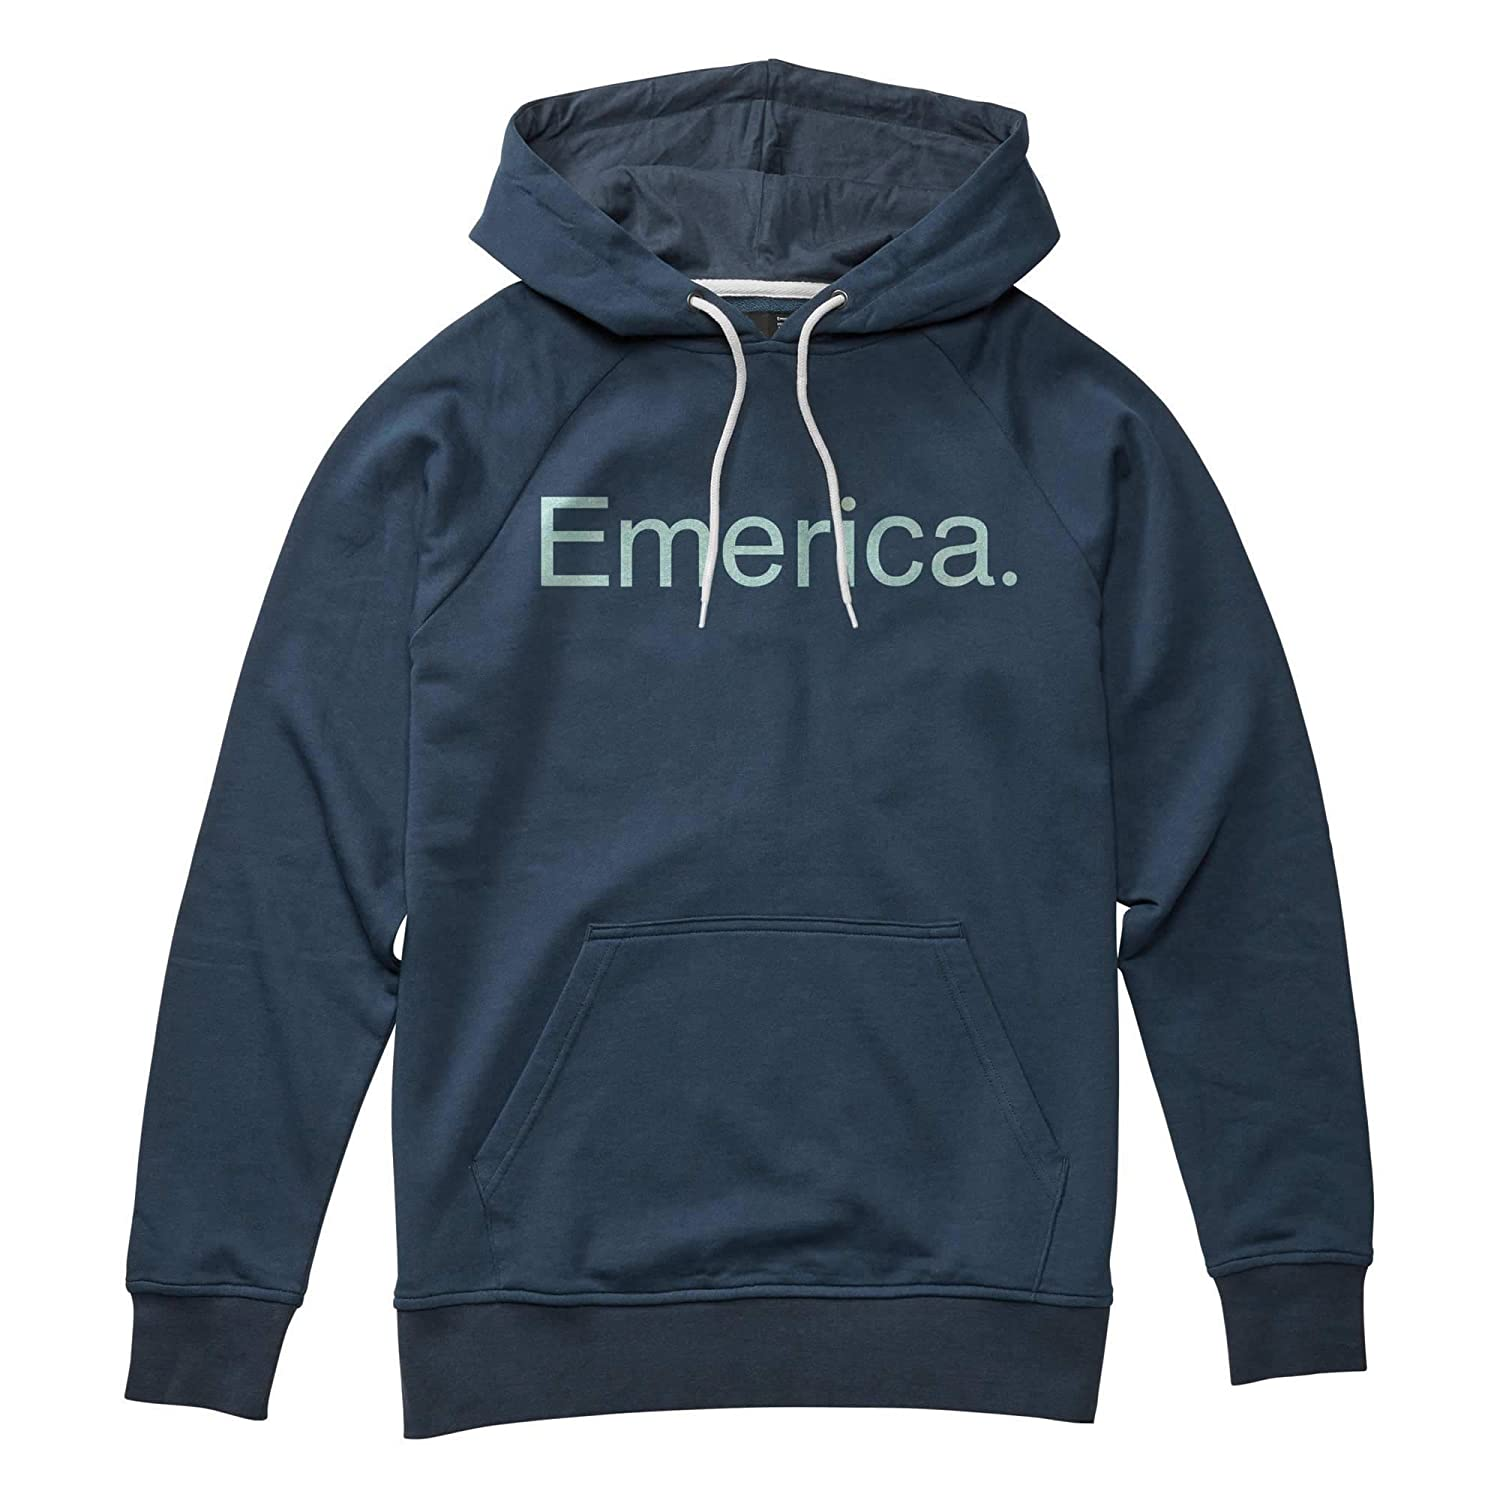 Emerica Sweat Purity Po Hooded Kapuzenpullover